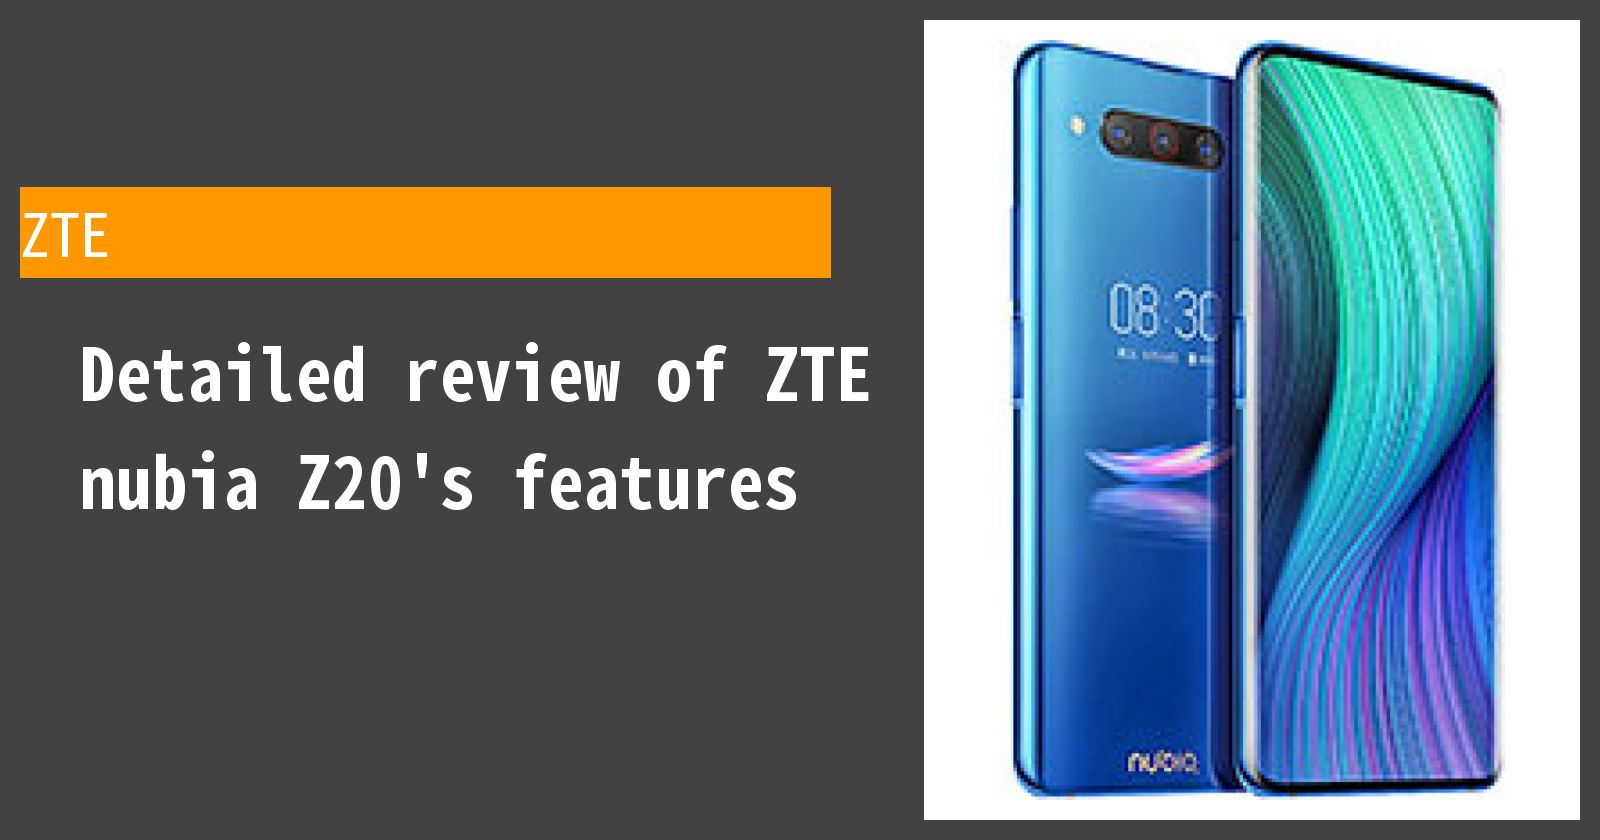 Detailed review of ZTE nubia Z20's features